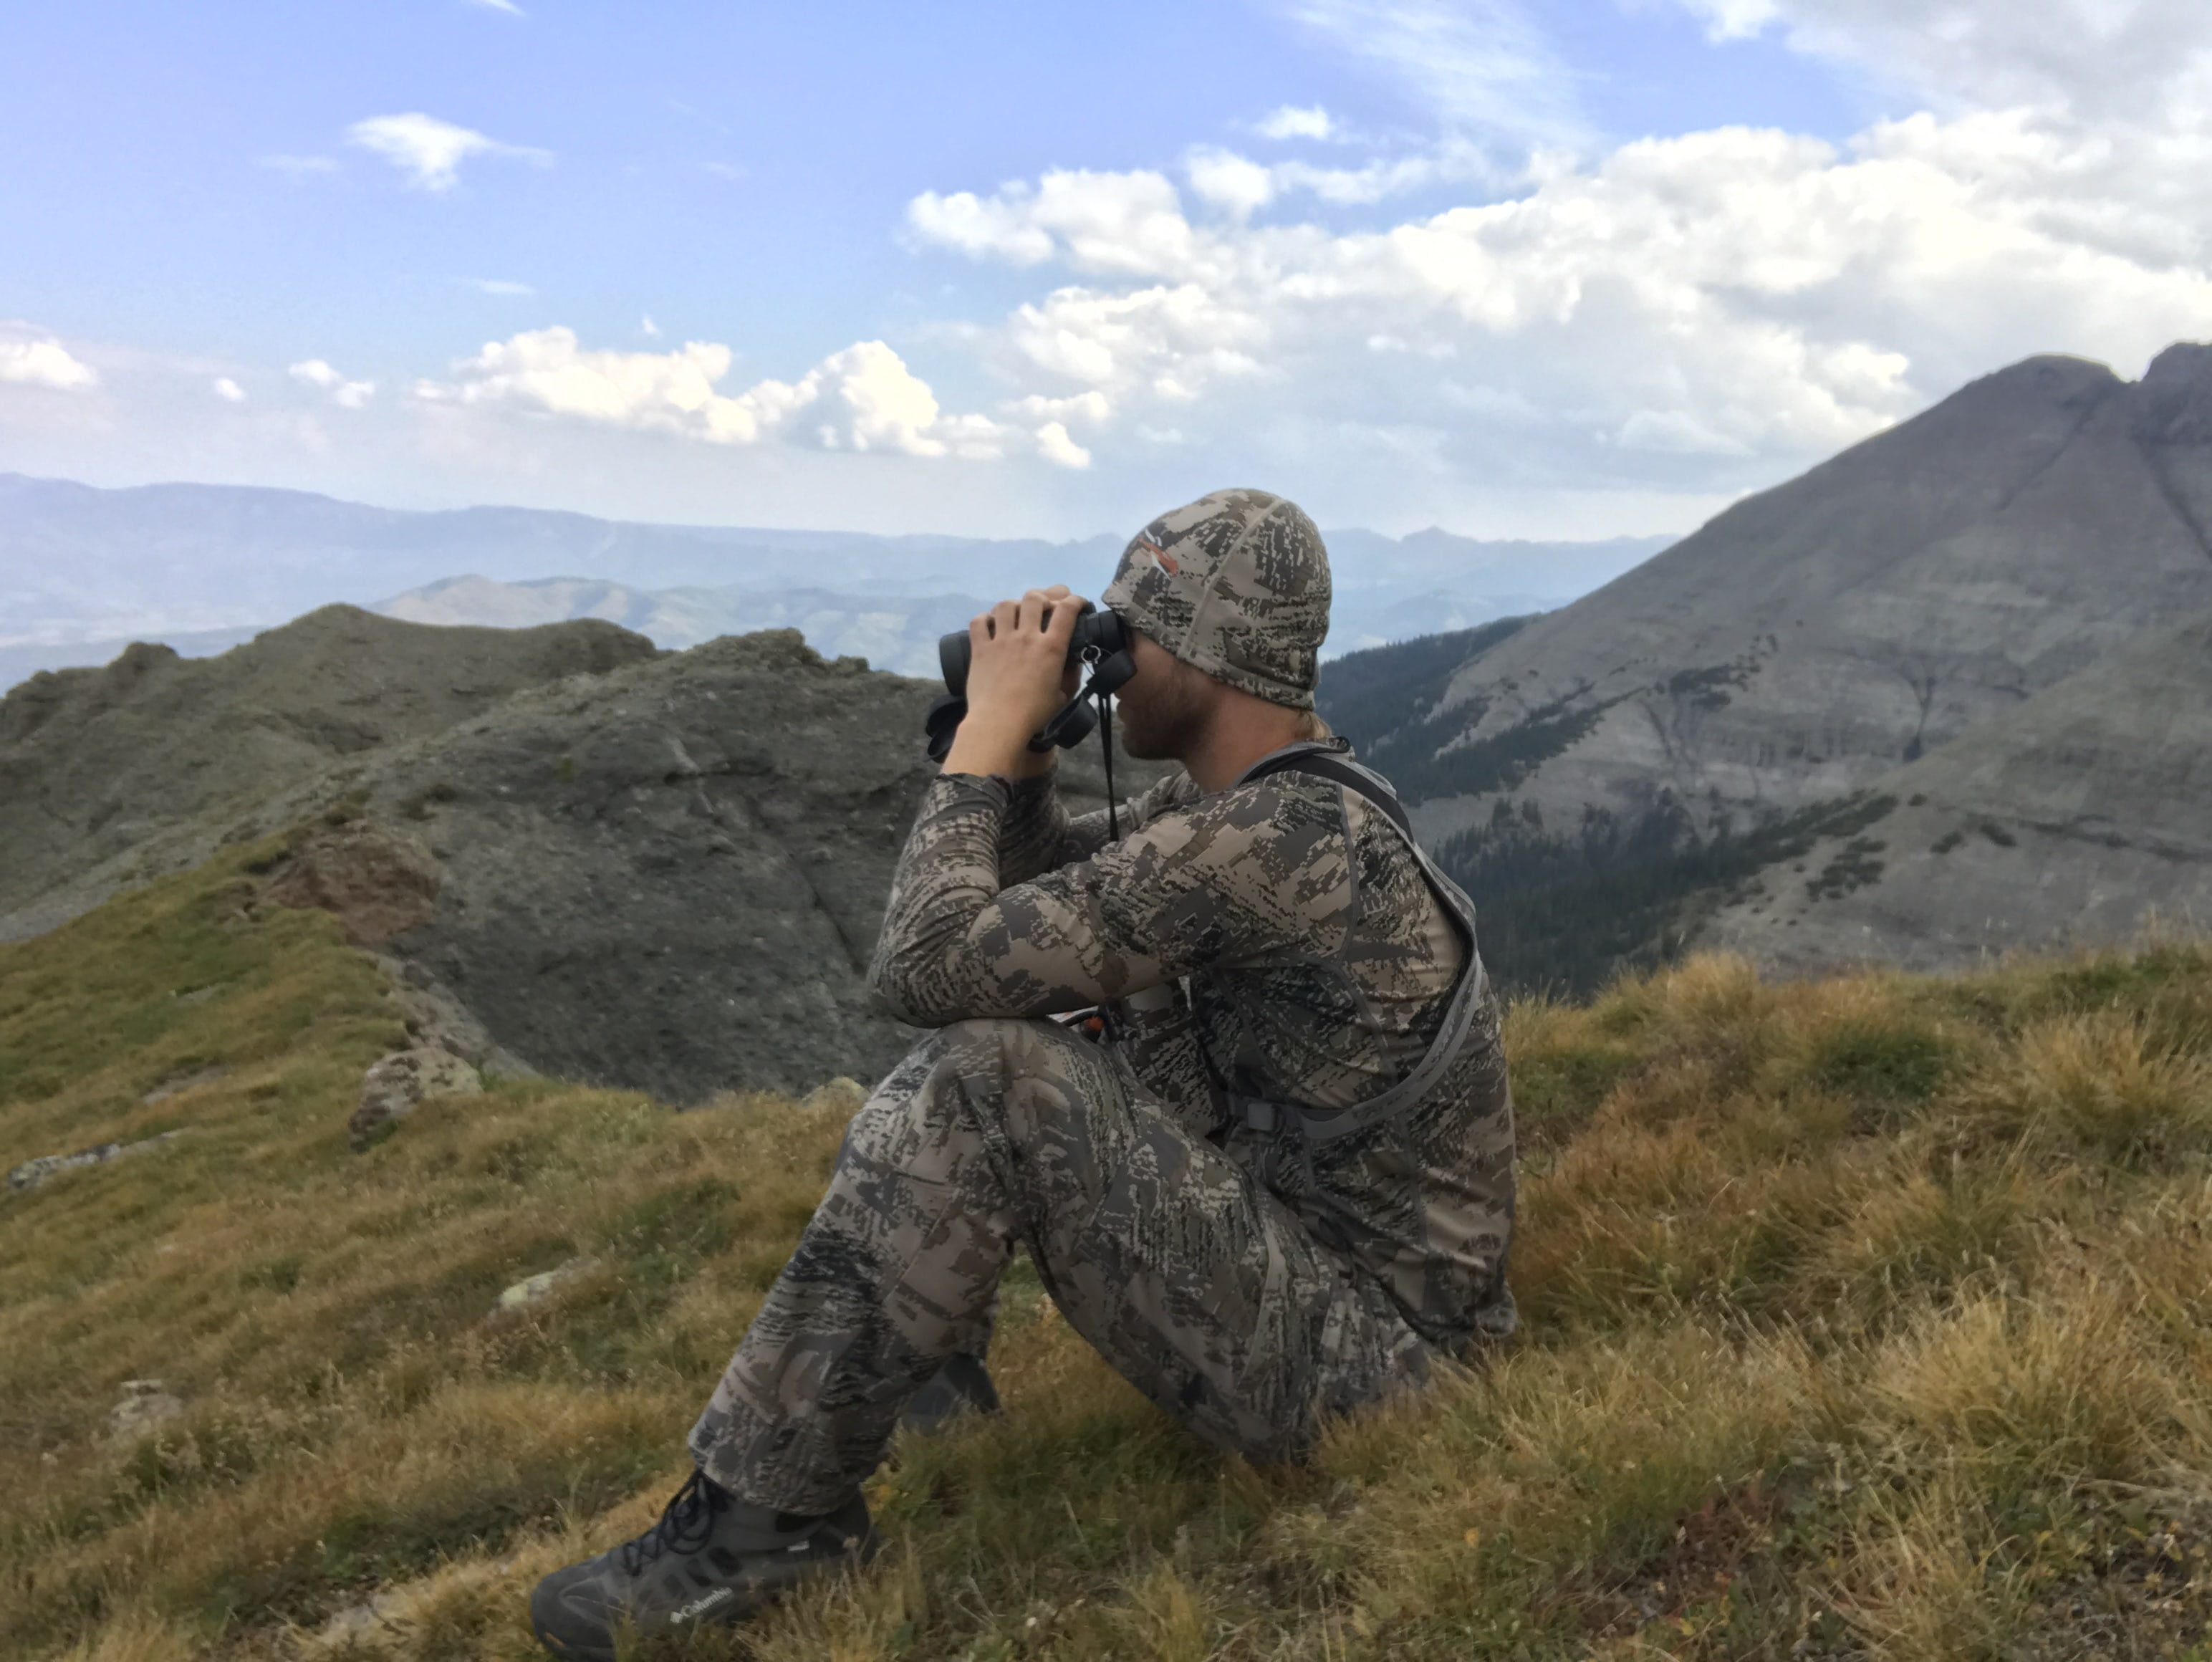 Glassing While Hunting